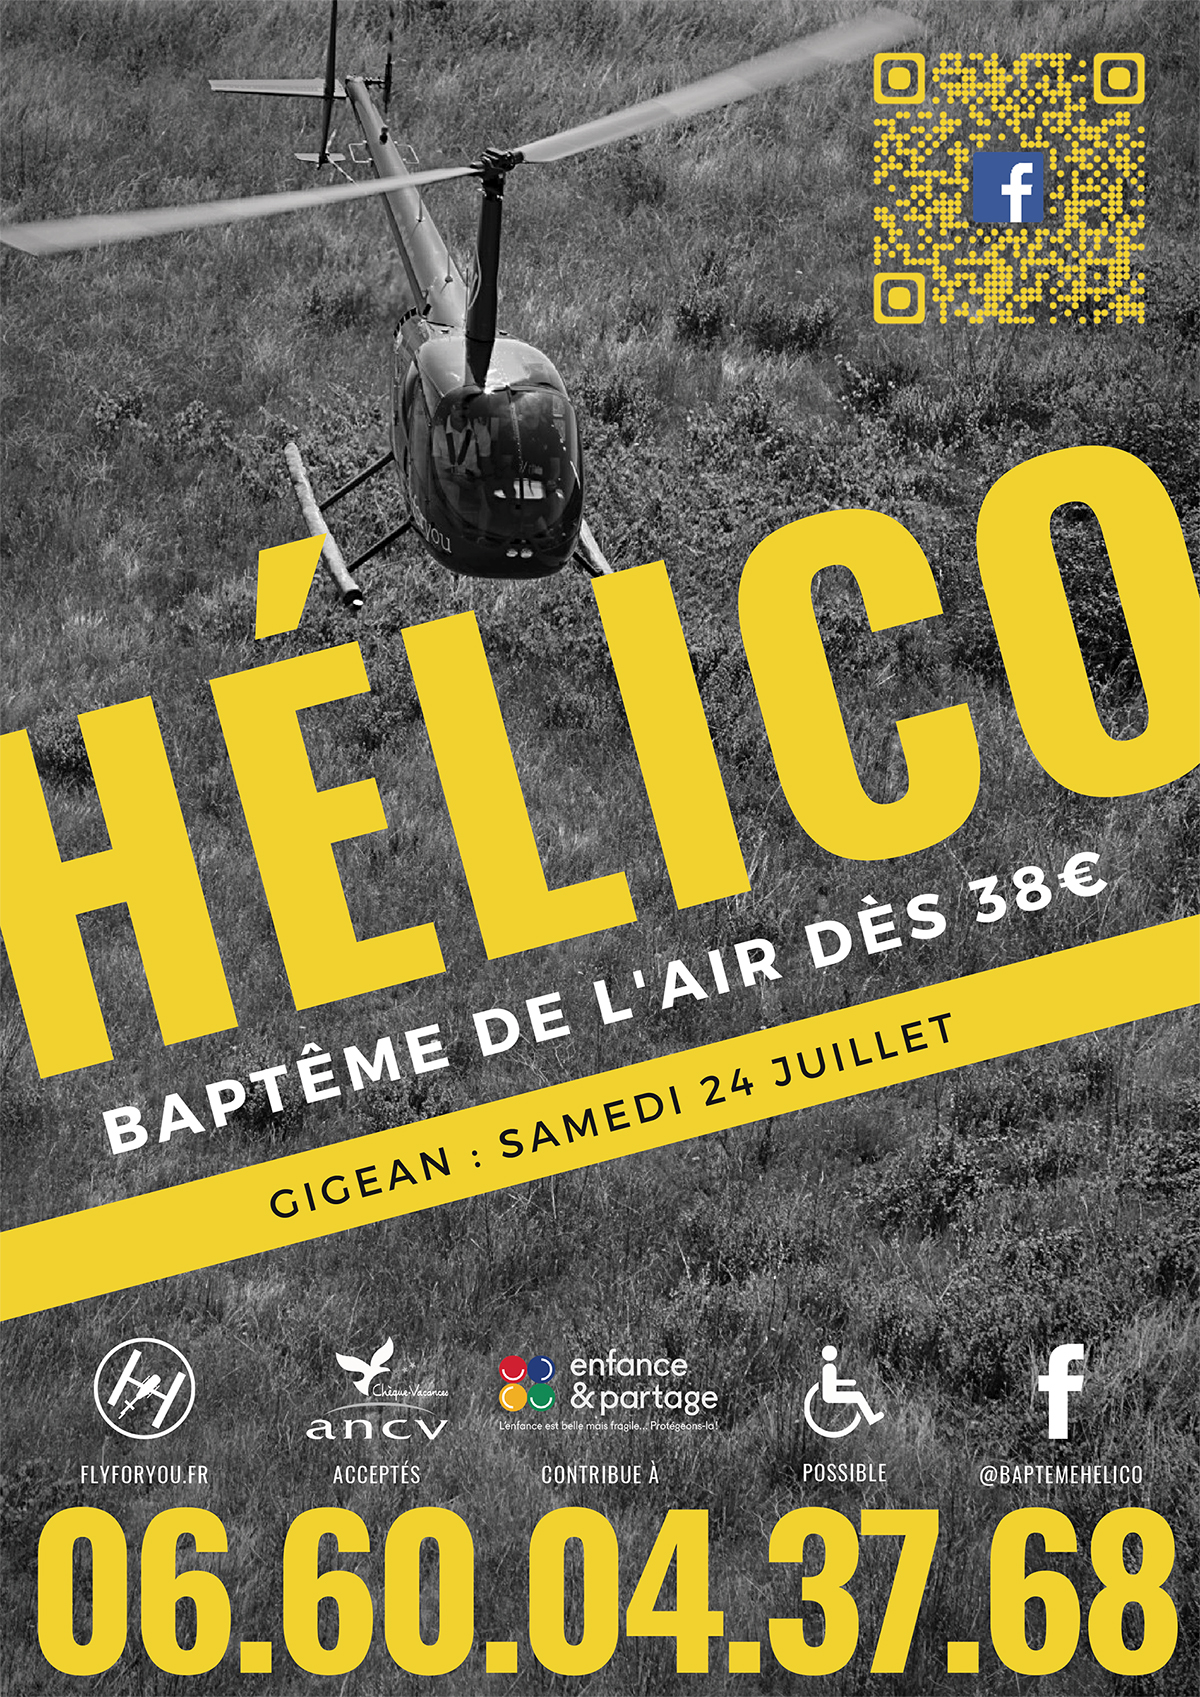 affiche_helicoptere.png.jpg